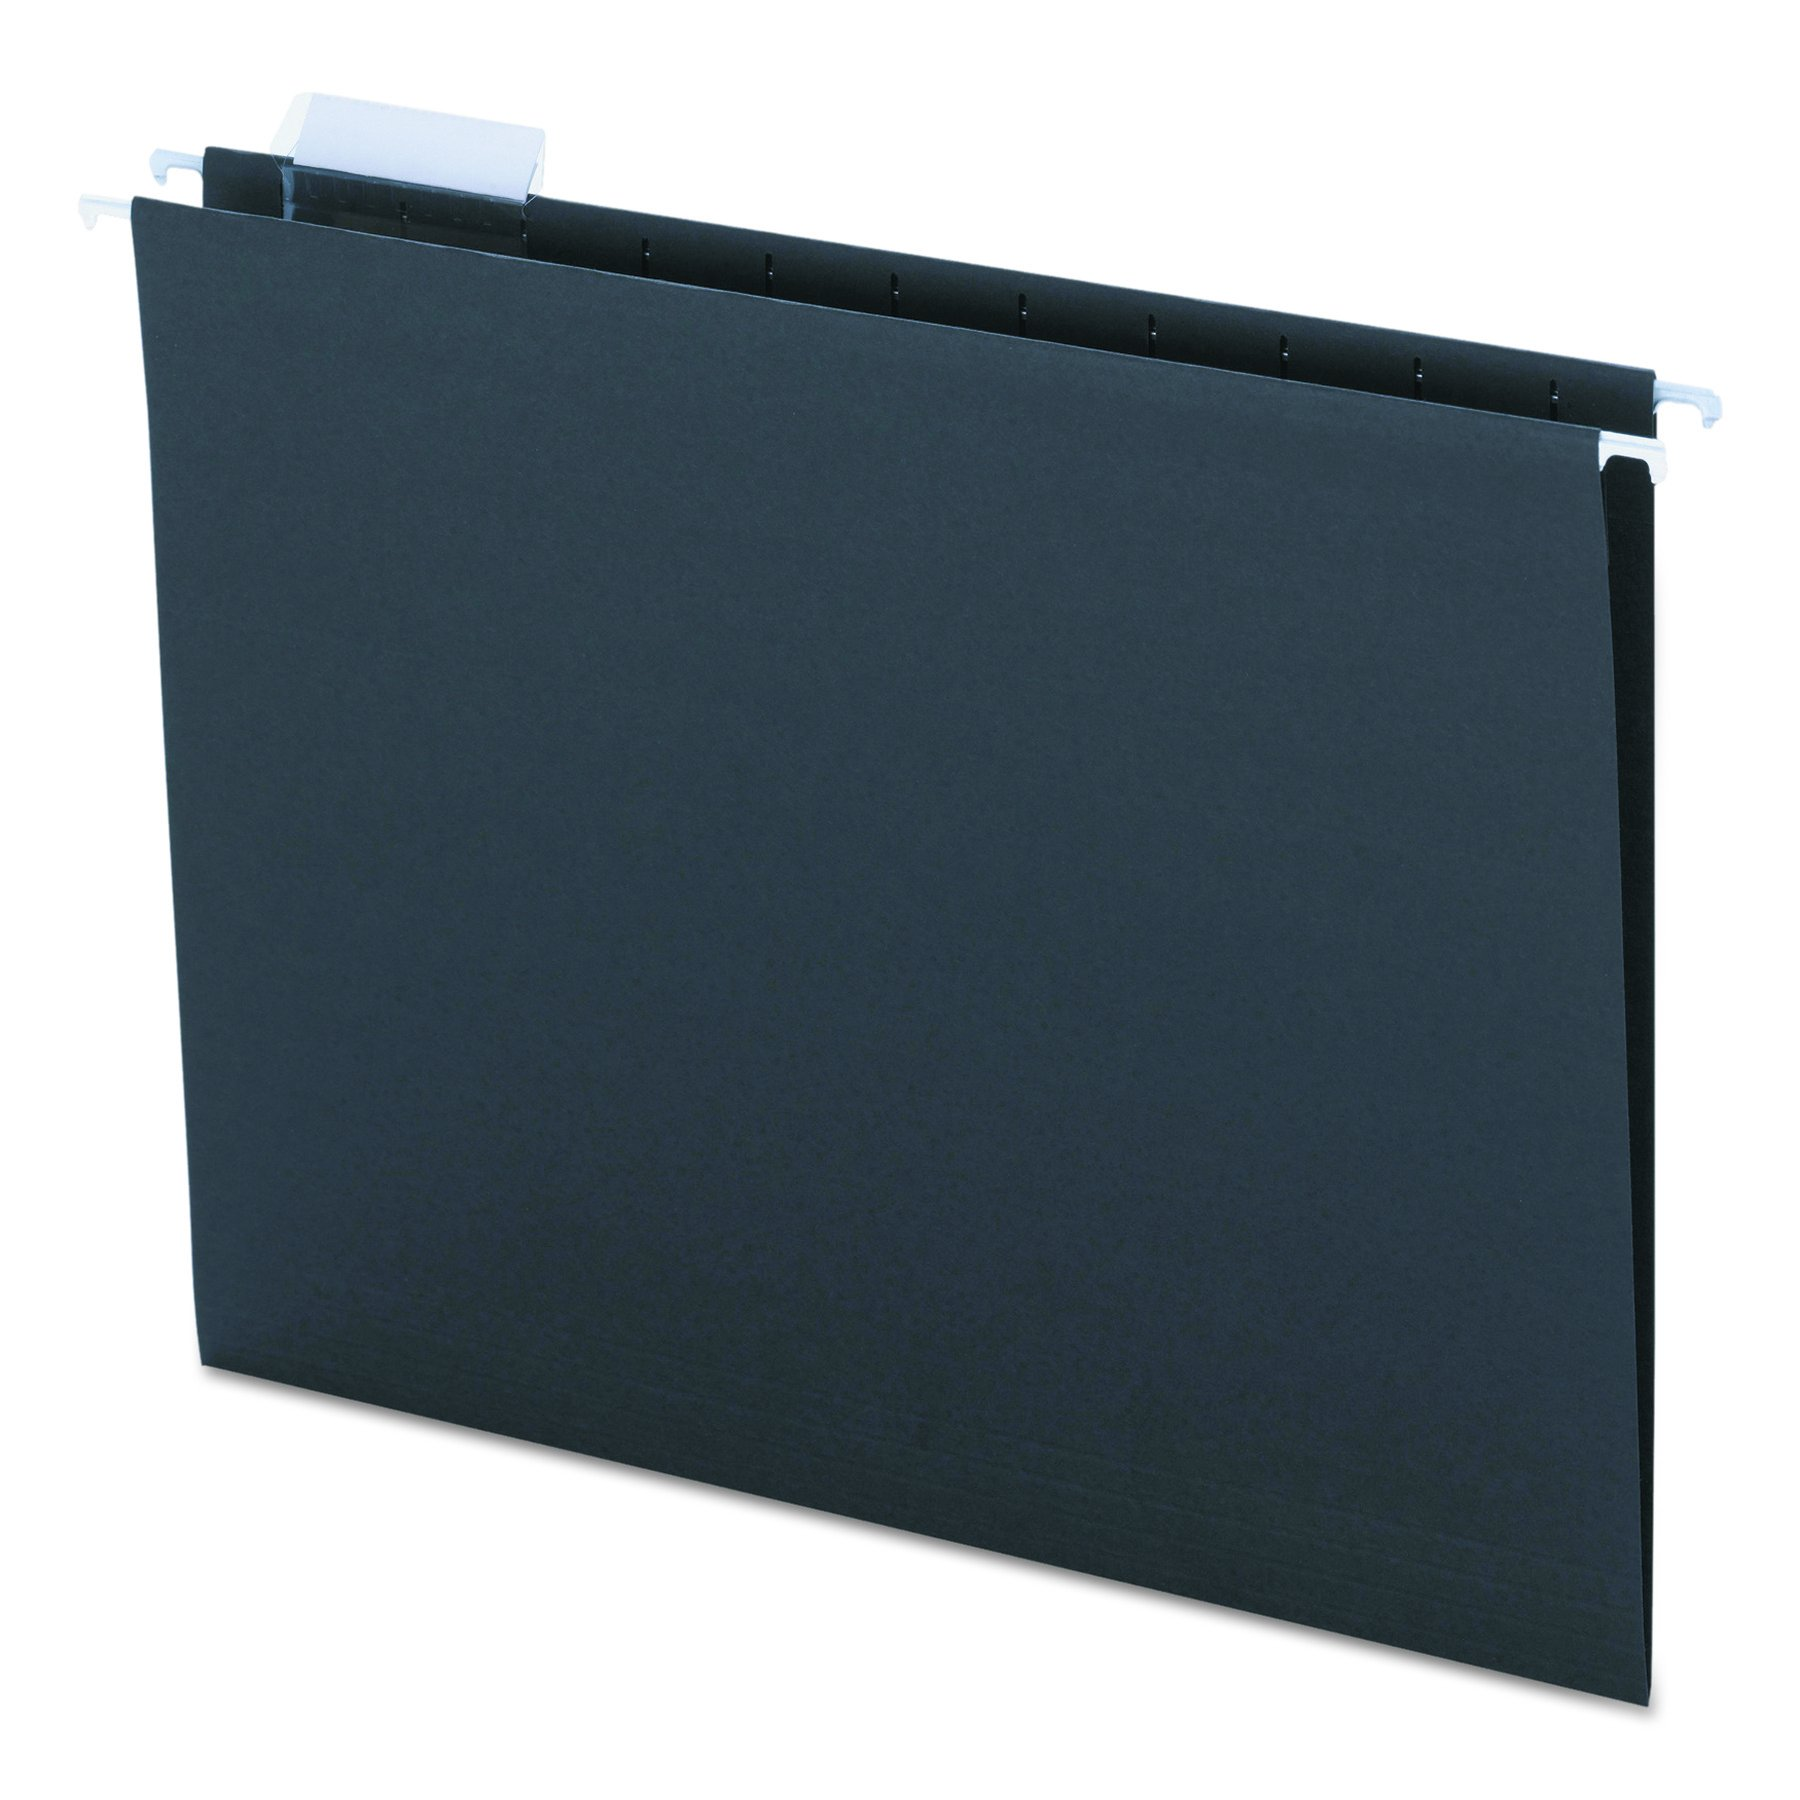 Smead Hanging File Folder with Tab, 1/5-Cut Adjustable Tab, Letter Size, Black, 25 per Box (64062) by Smead (Image #1)